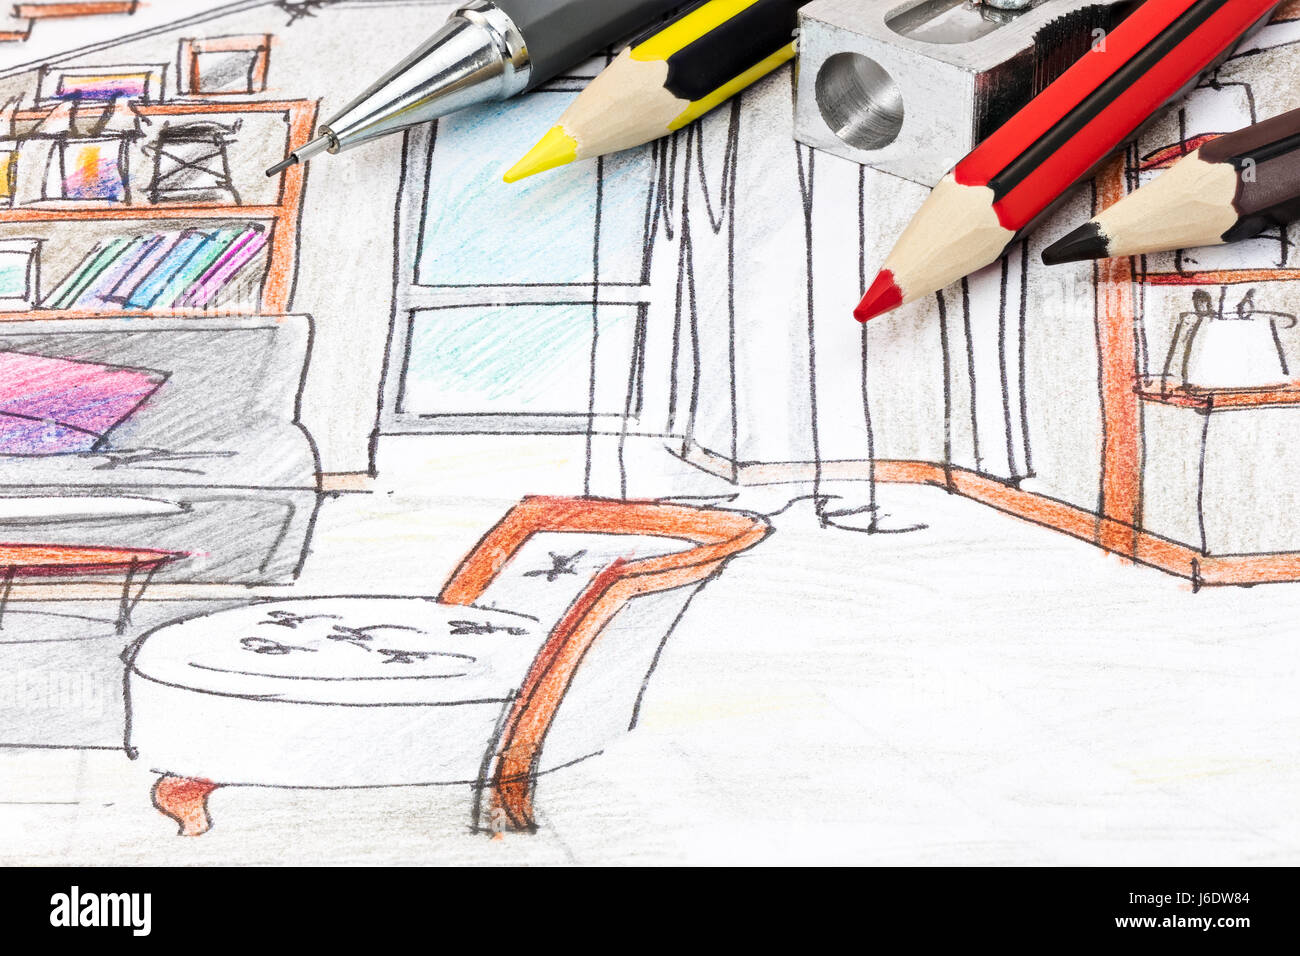 Pencils and sharpener on designers graphical sketch for furniture pencils and sharpener on designers graphical sketch for furniture blueprint closeup malvernweather Choice Image